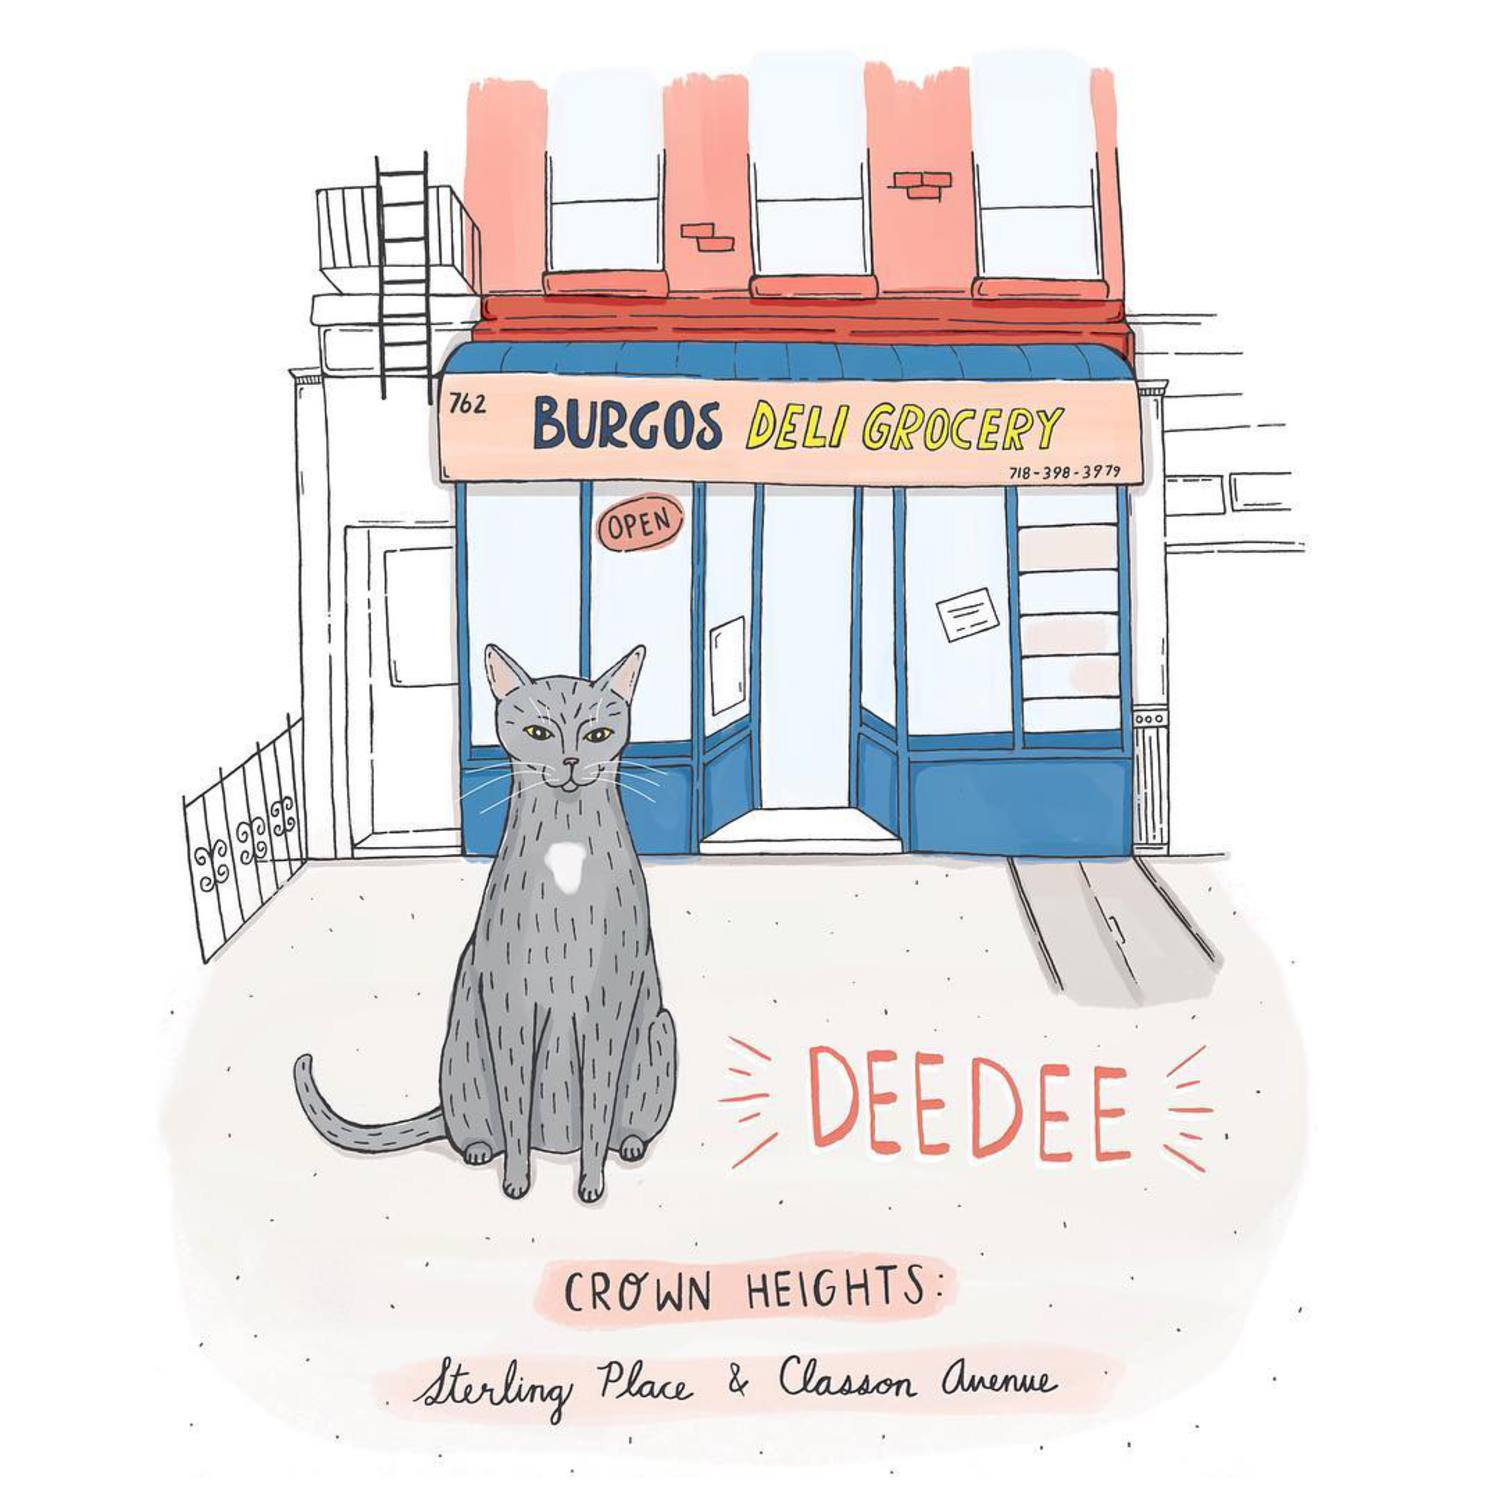 Deedee // Crown Heights, Brooklyn  #brooklynbodegacats #brooklyn #bodegacats #bodegacatsofinstagram #brooklynbodega #catillustration #illustration #brooklynillustrators #cats #catsofinstagram #crownheights